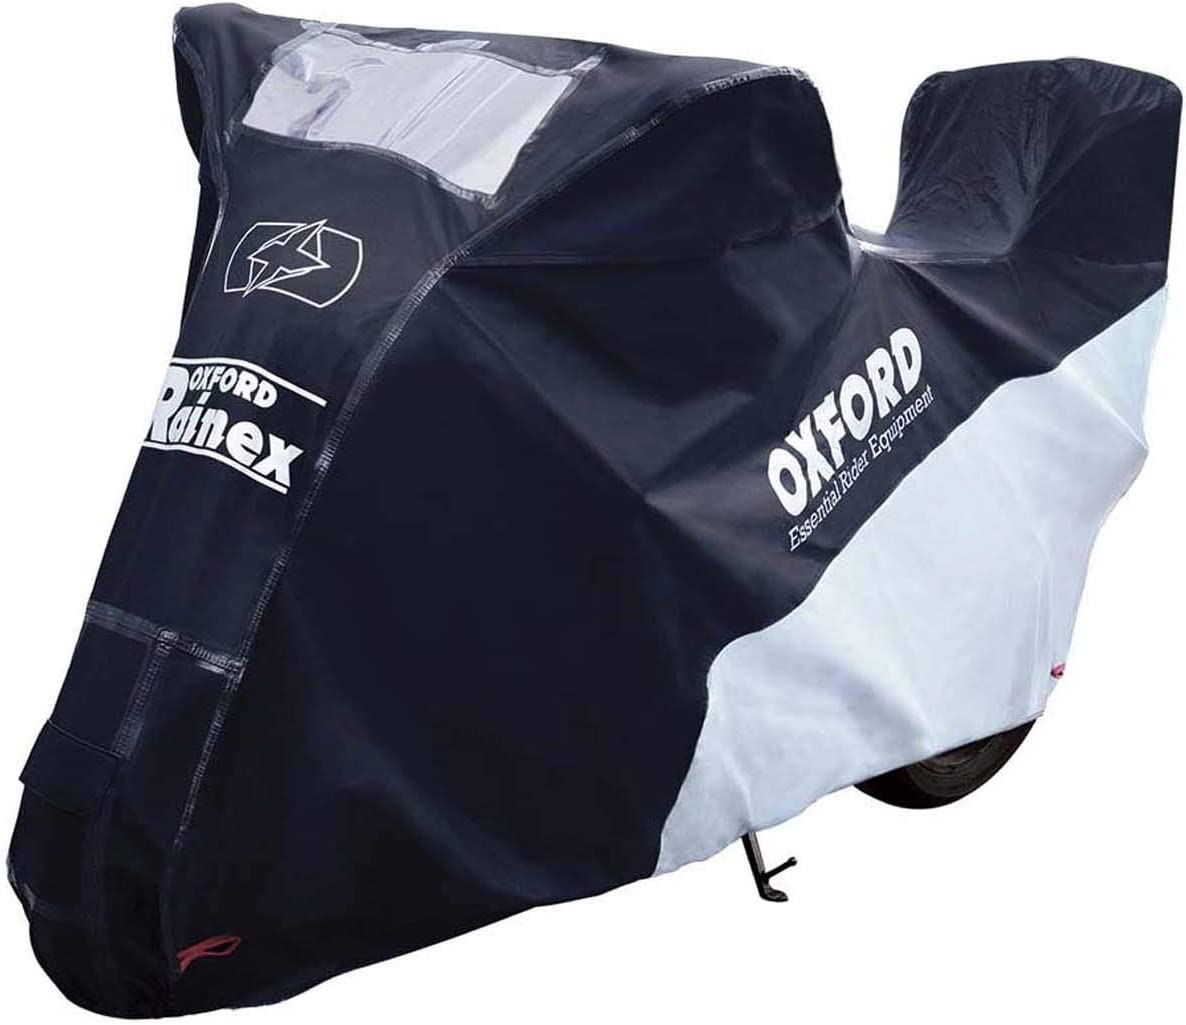 CV505 Oxford Rainex Top Box Motorcycle Outdoor Cover Scooter Small